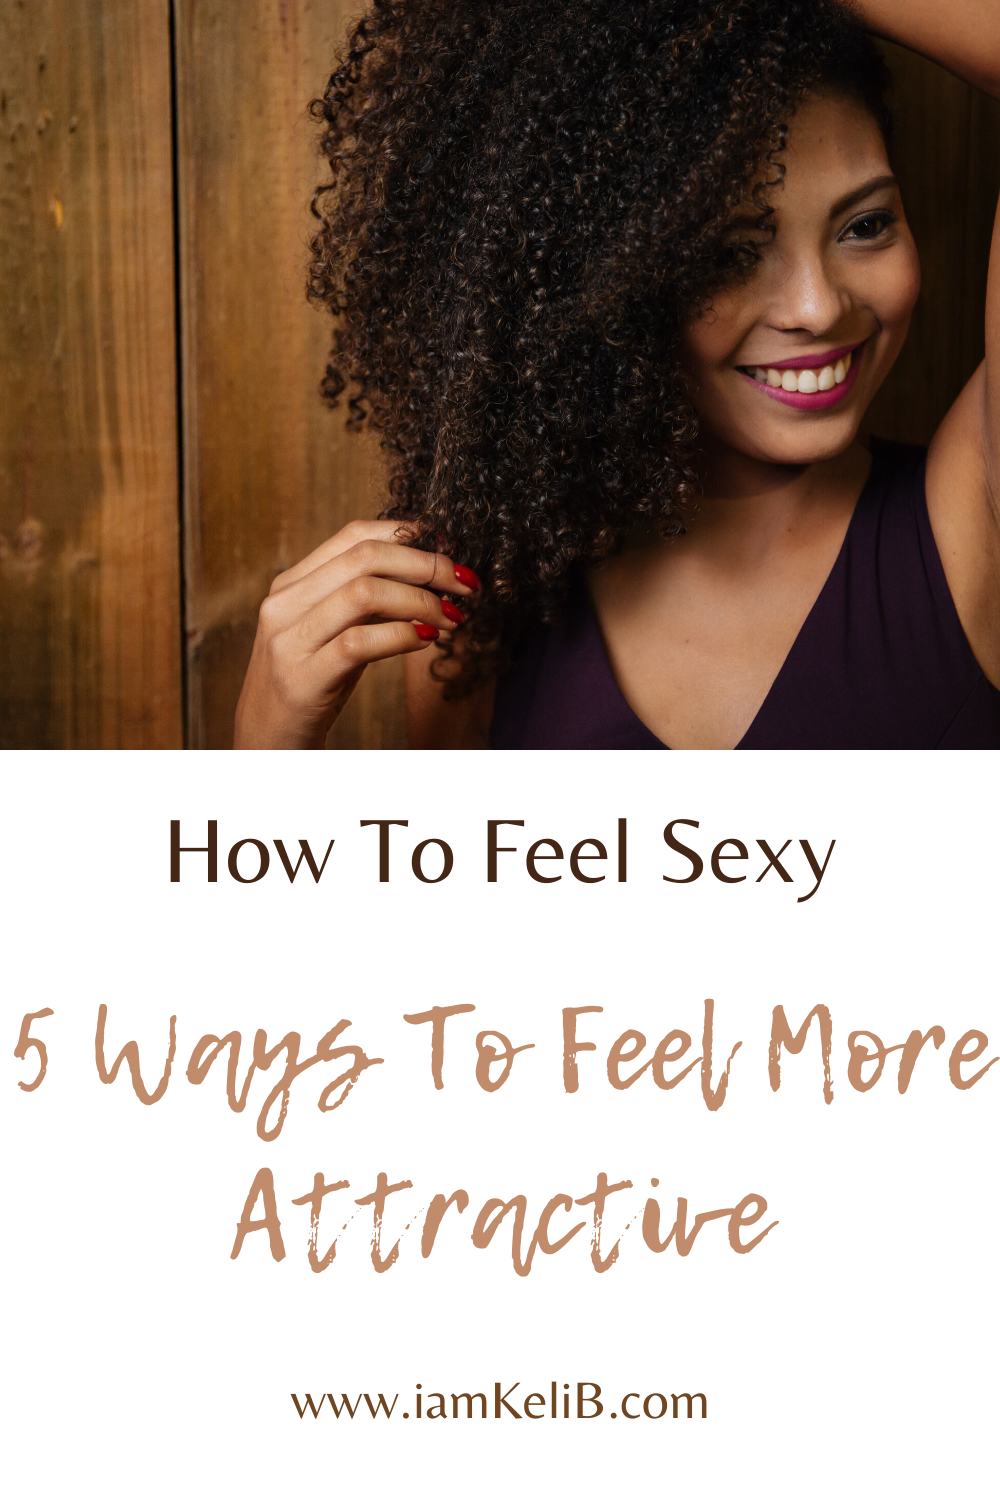 How To Feel Sexy